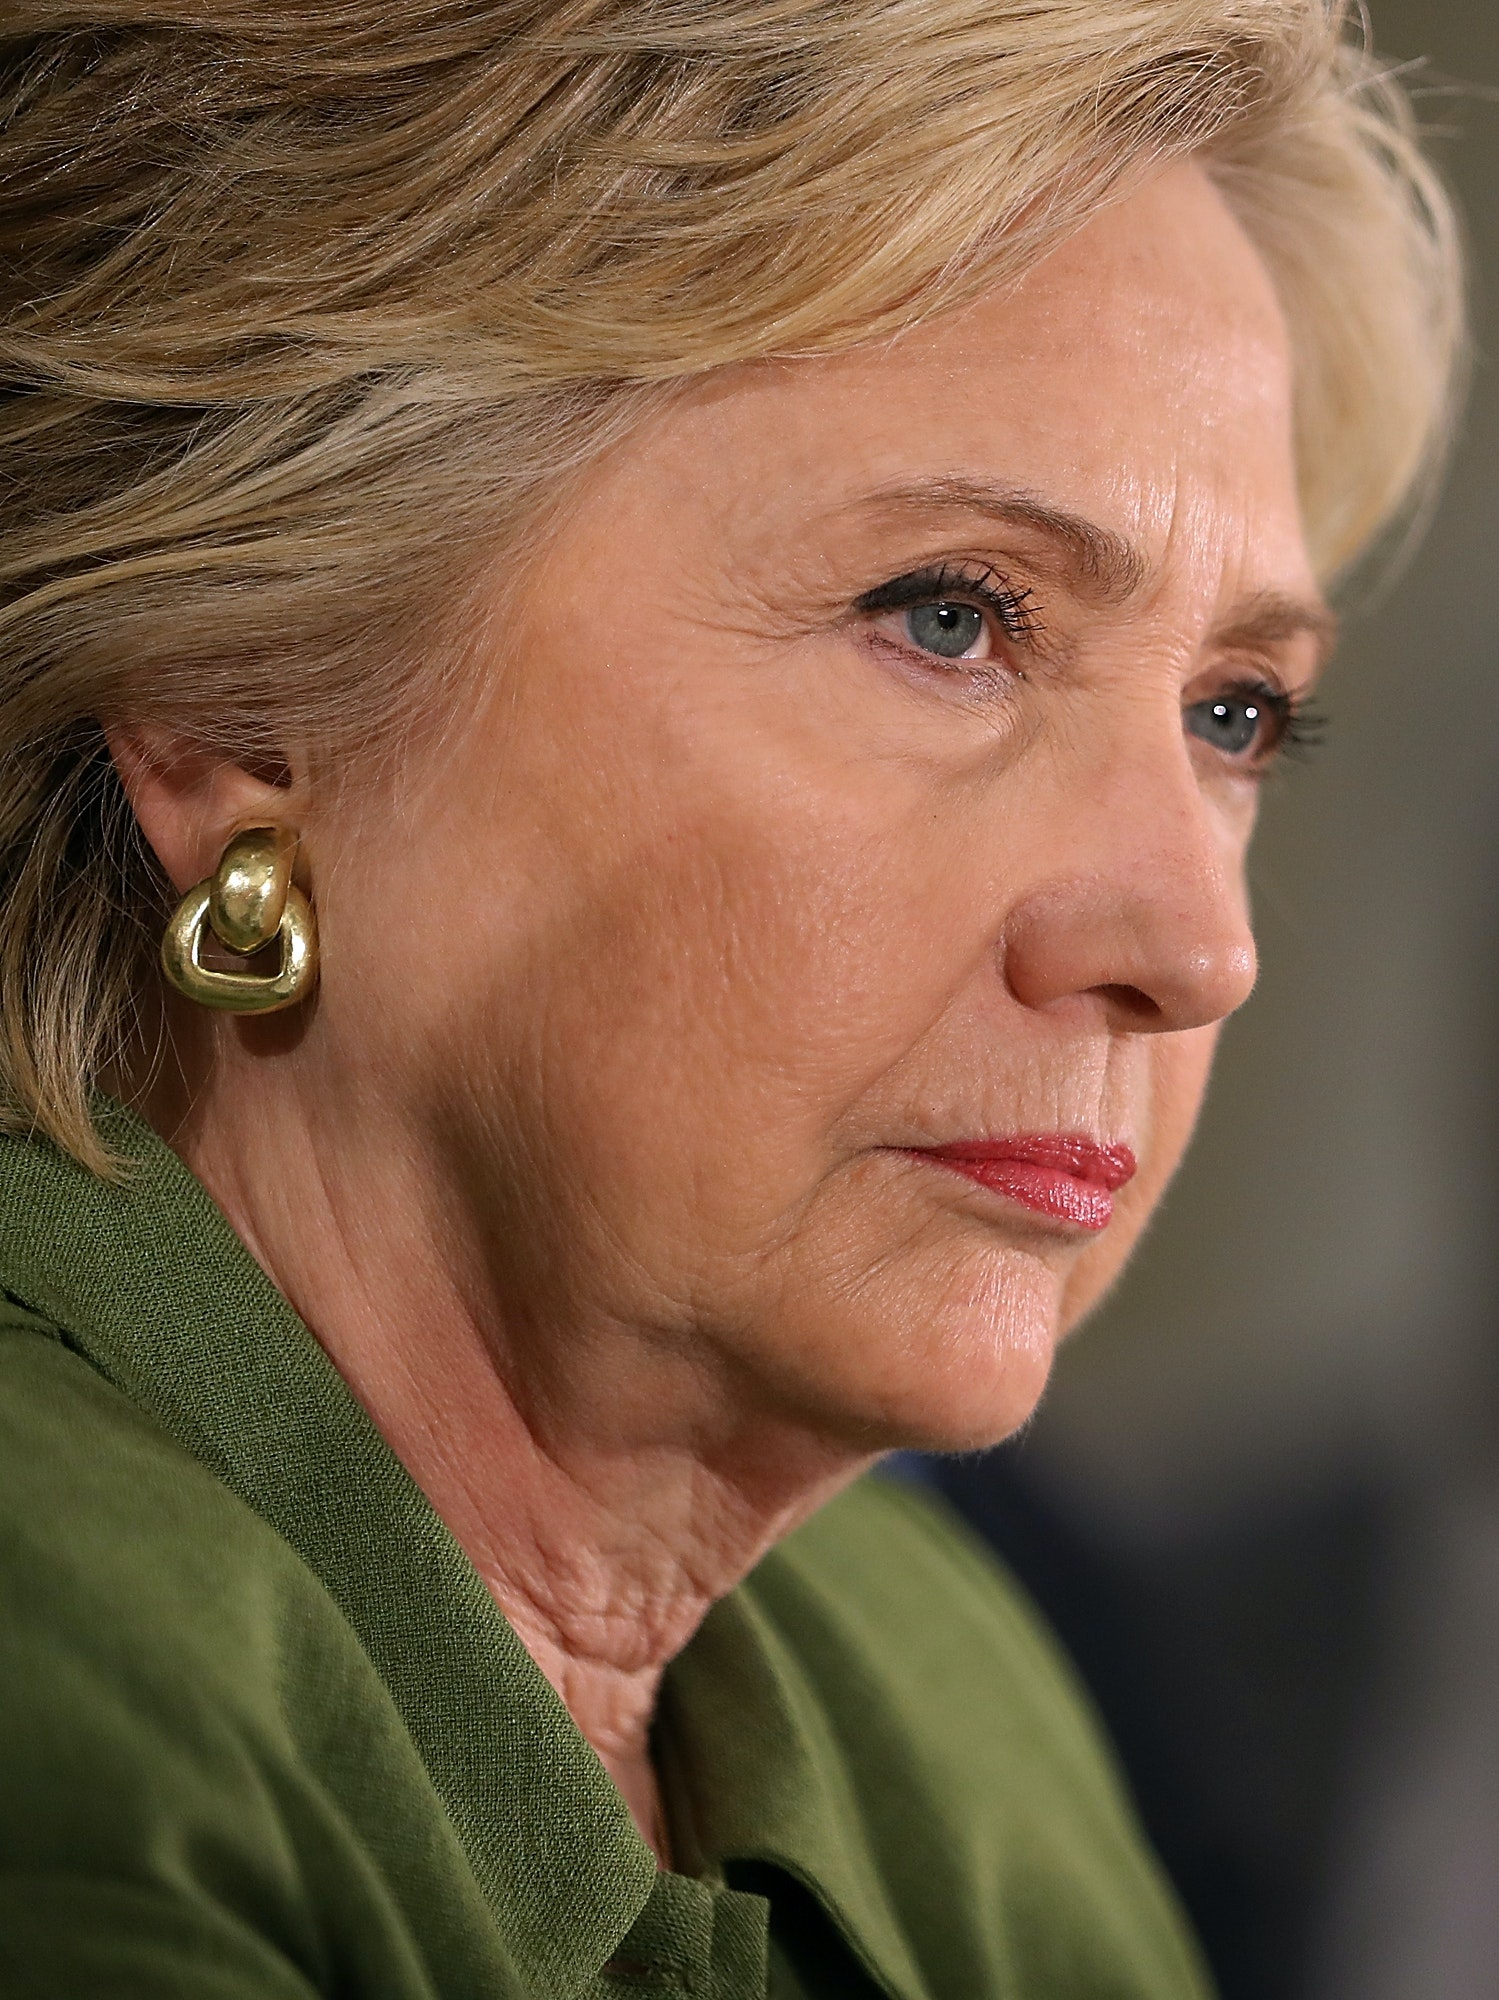 ORLANDO, FL - JULY 22:  Democratic presidential candidate former Secretary of State Hillary Clinton looks on during a round table discussion at Holden Heights Community Center on July 22, 2016 in Orlando, Florida. With three days to go until the Democratic National Convention, Hillary Clinton is campaigning in Florida.  (Photo by Justin Sullivan/Getty Images)